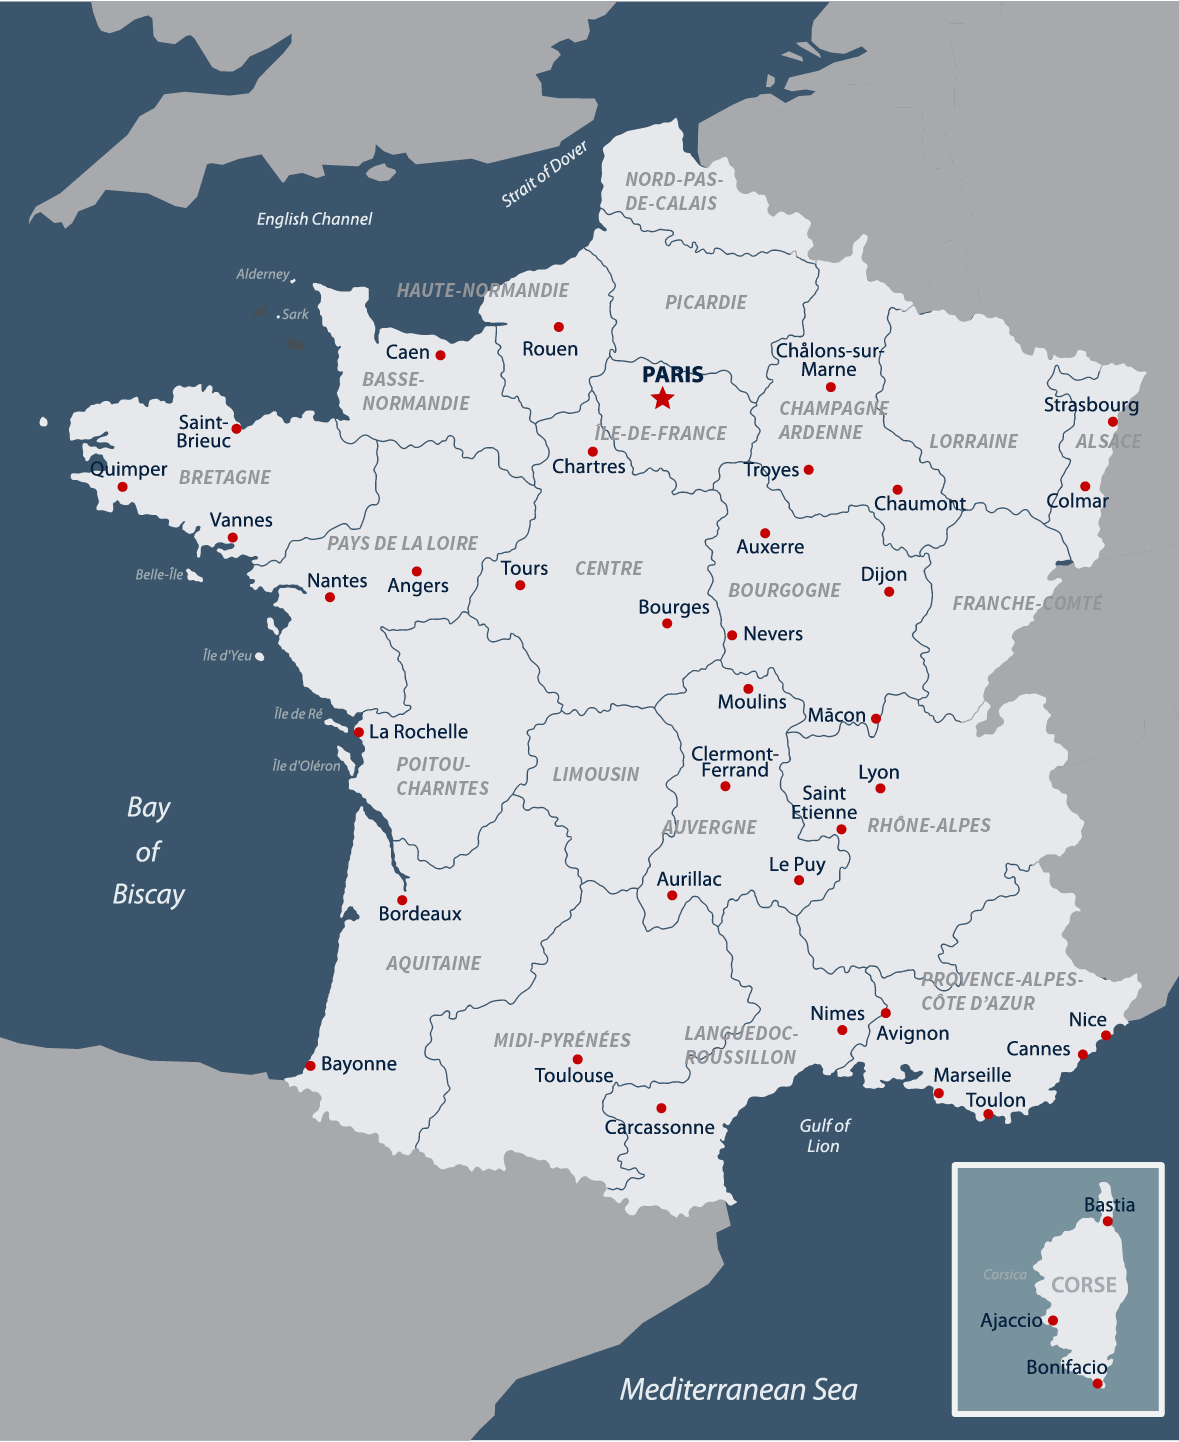 Map Of France Germany Switzerland.French Geography Weather Road Scholar Travel Guide